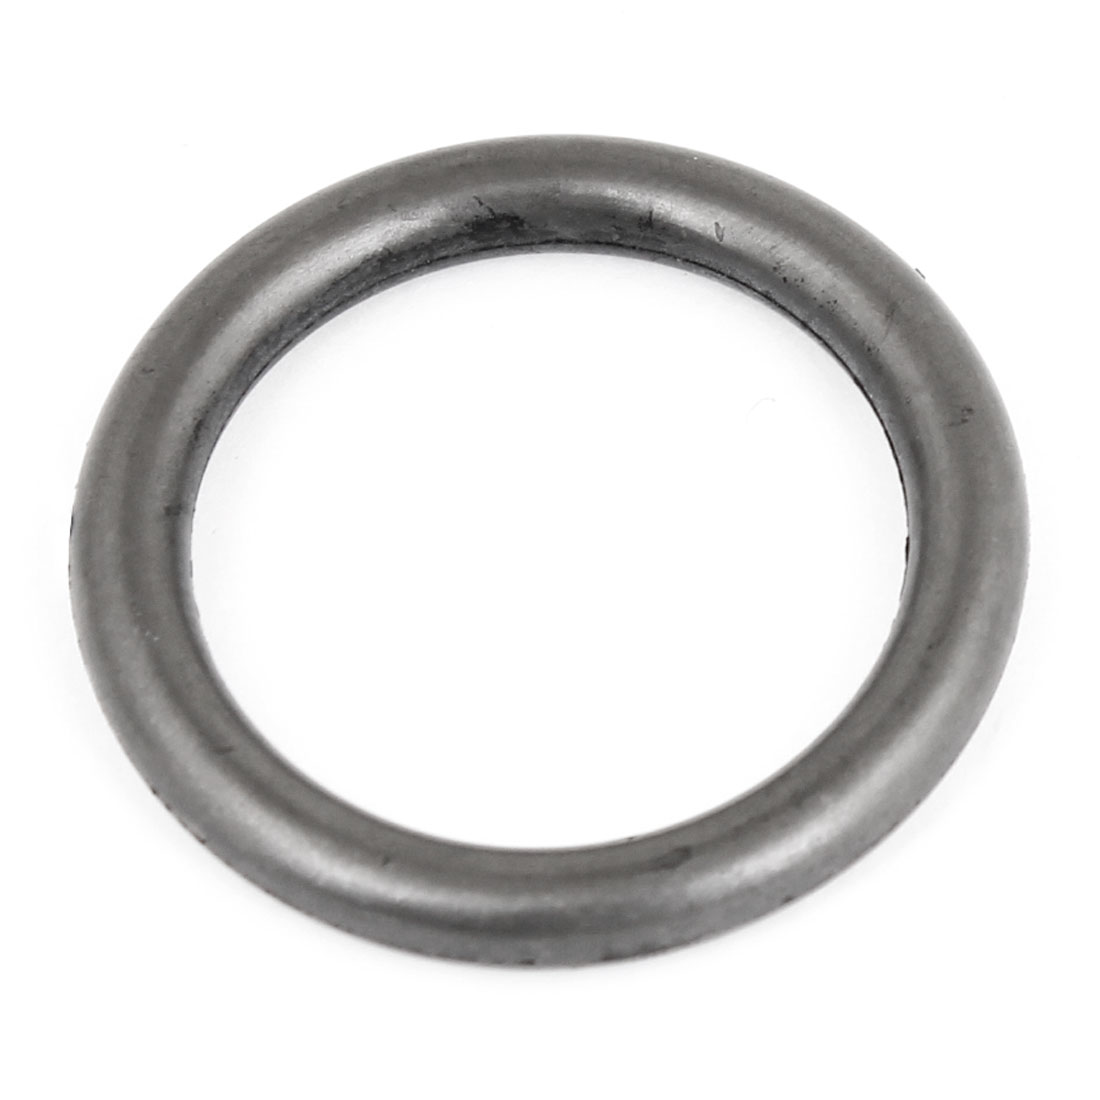 Auto Car Engine Exhaust Coolant Pipe Gasket O Ring Repairing Part N90560701